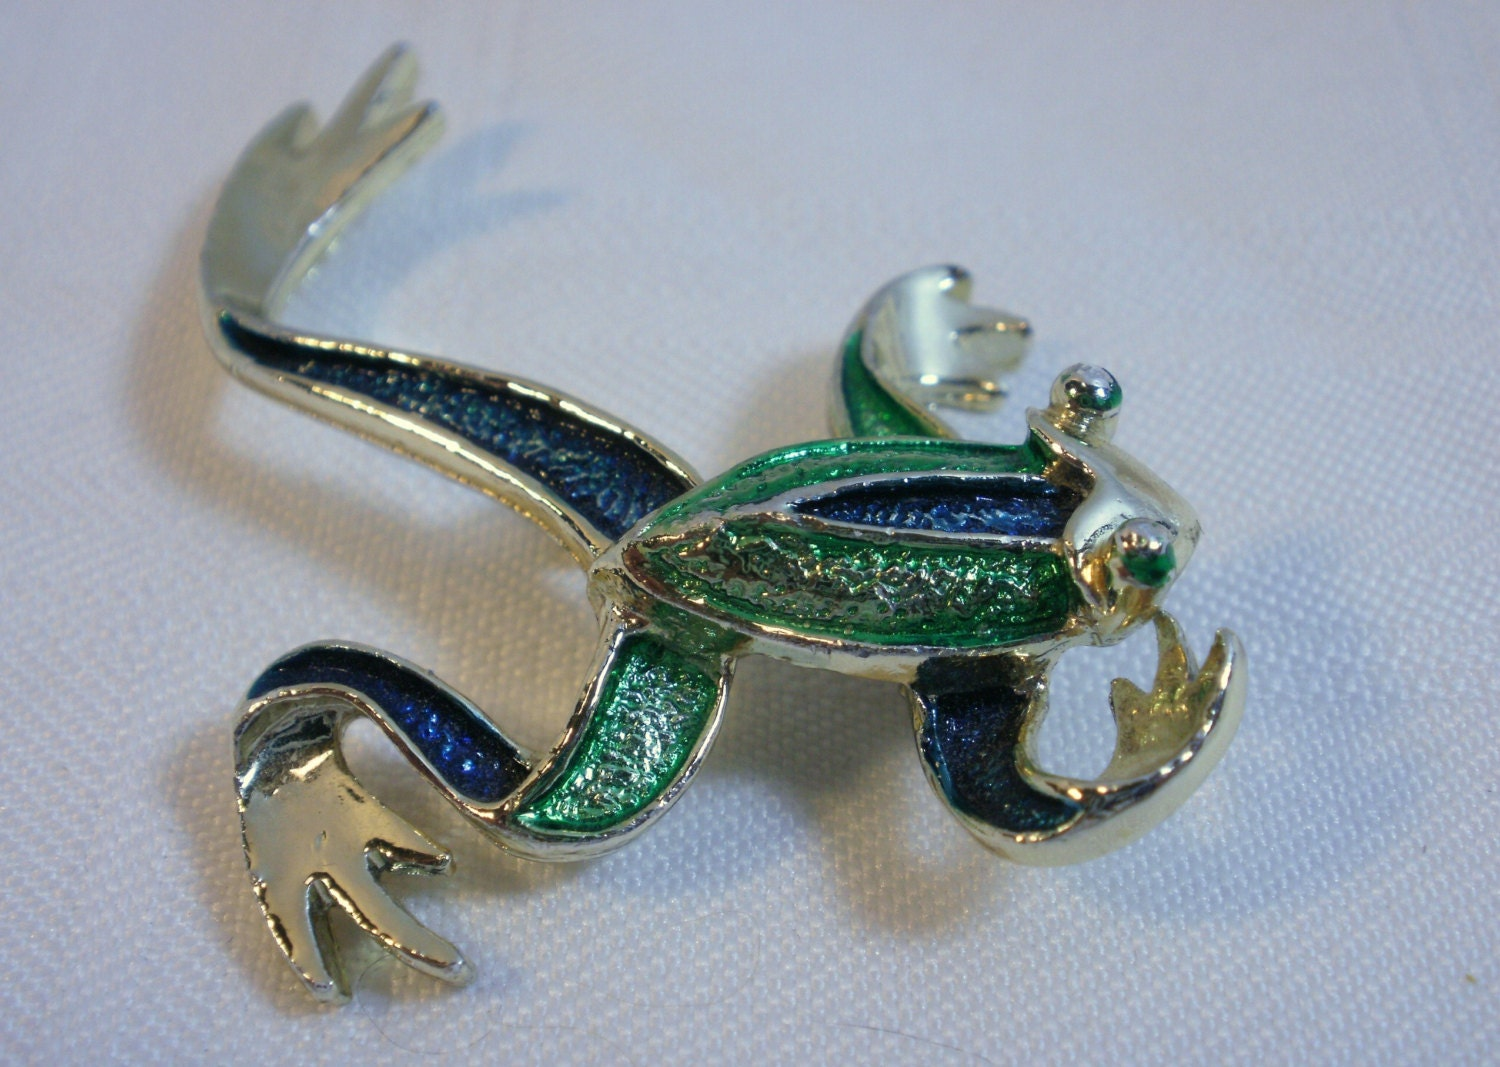 frog brooch gerry s jewelry company vintage 1970s green